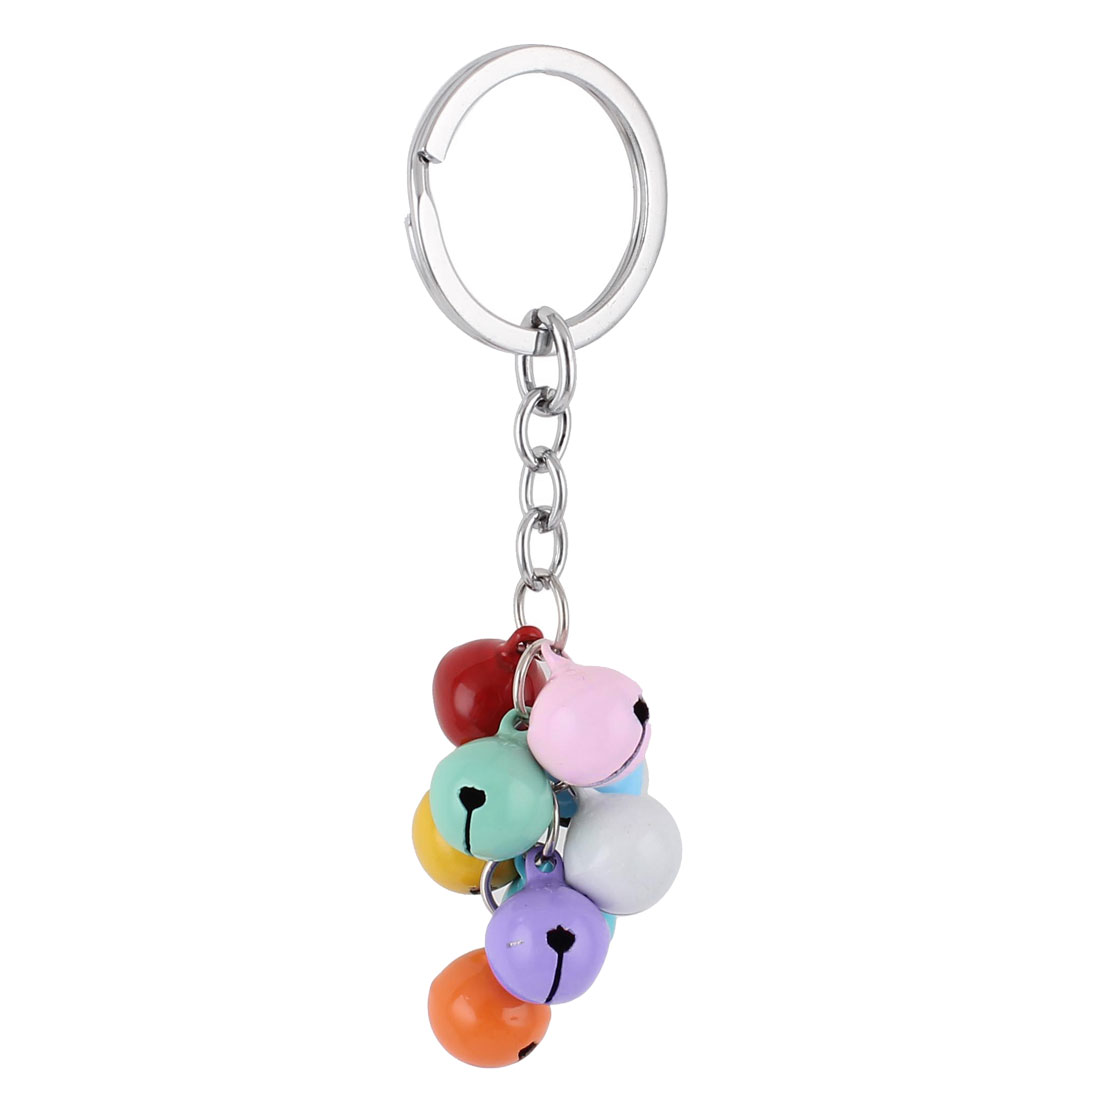 Metal Bells Pendant Keyring Keychain Key Holder Chain Purse Ornament Multicolor